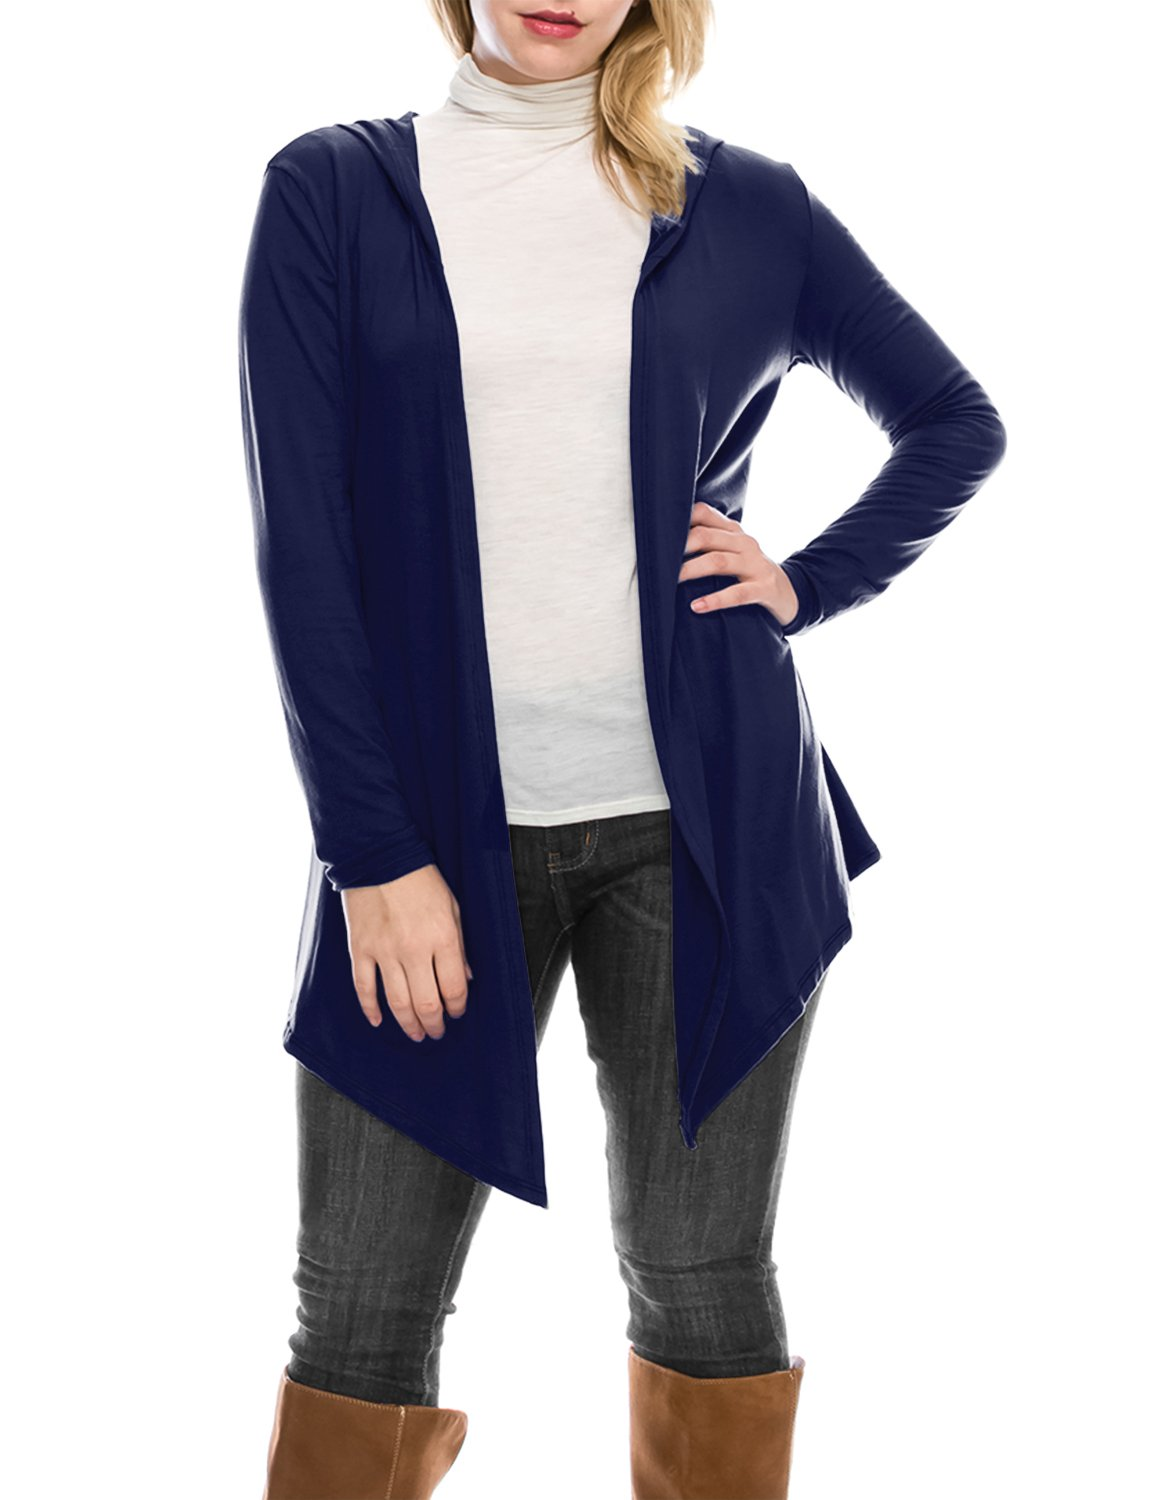 BIADANI Women's Hooded Open Front Lightweight Cardigan Navy X-Large